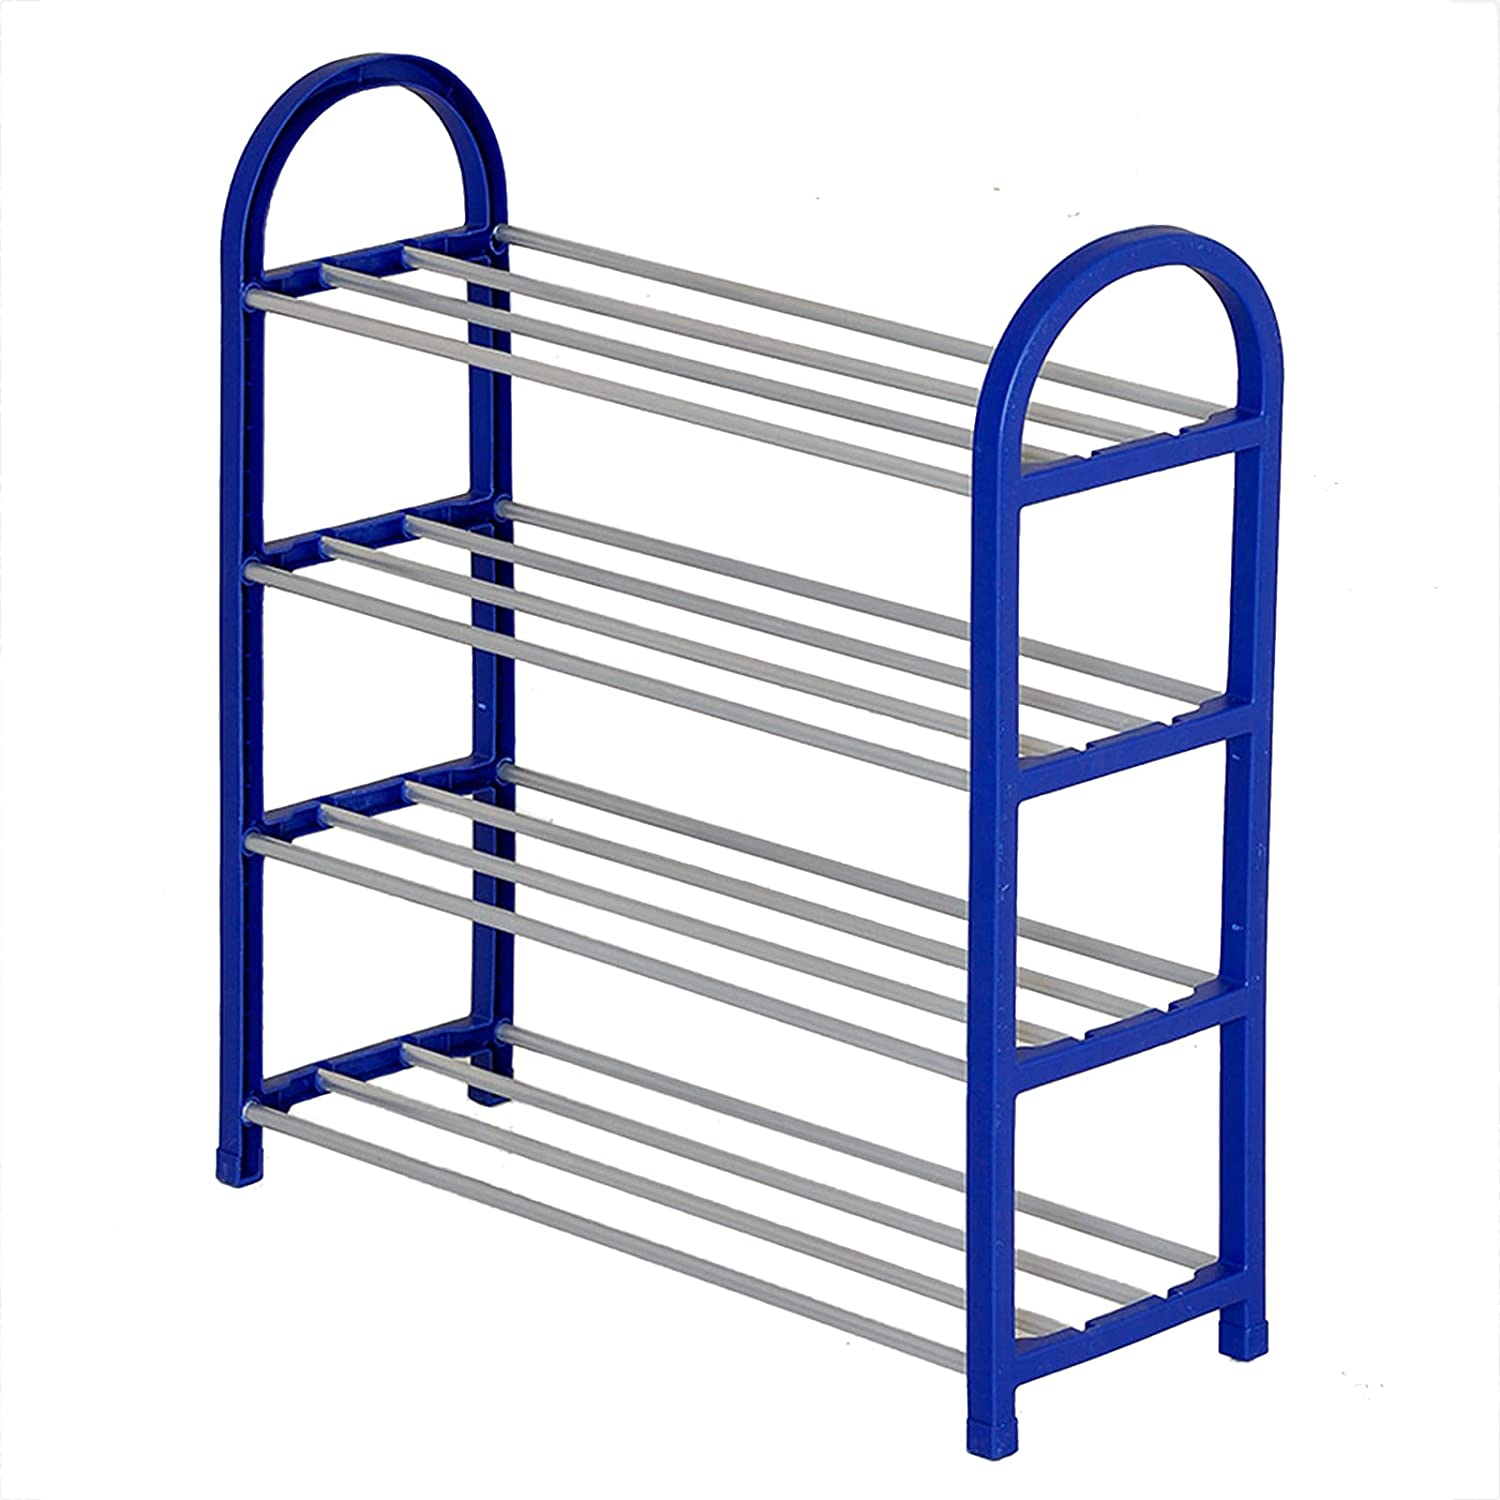 JHSLXD Shoe Rack Cheap mail order shopping Home Clearance SALE! Limited time! Assembly Hallway 5-La